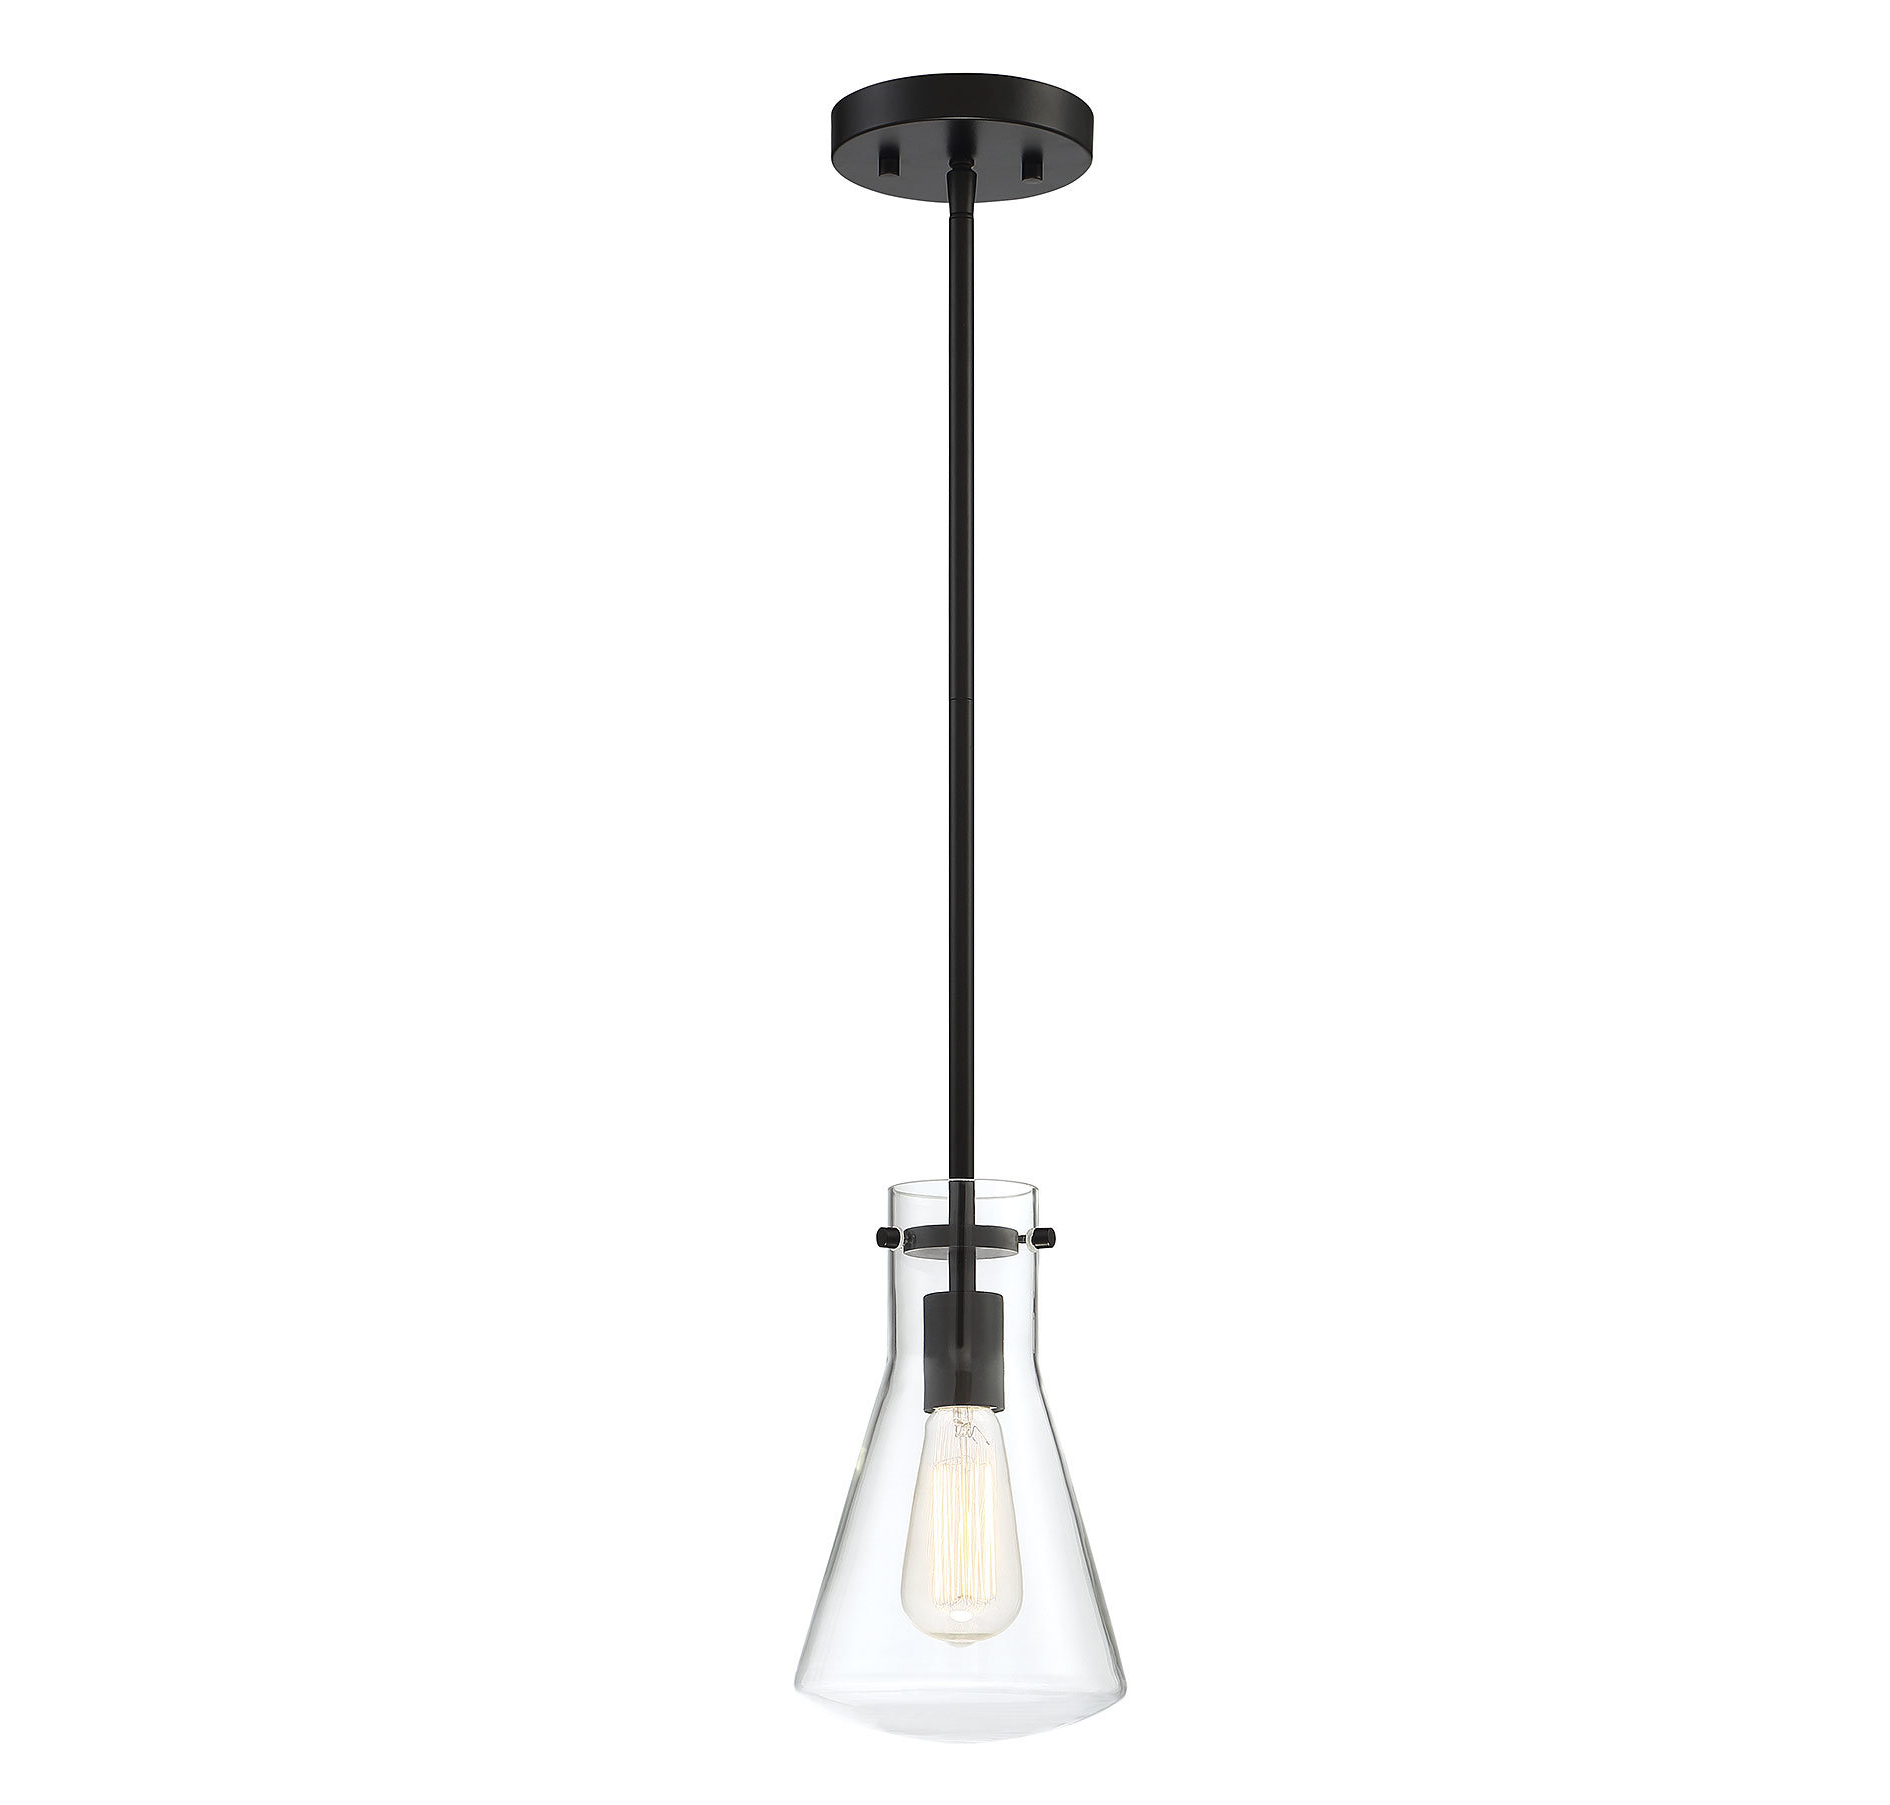 Moyer 1 Light Single Cylinder Pendants Throughout Fashionable Enciso 1 Light Single Cone Pendant (View 8 of 25)